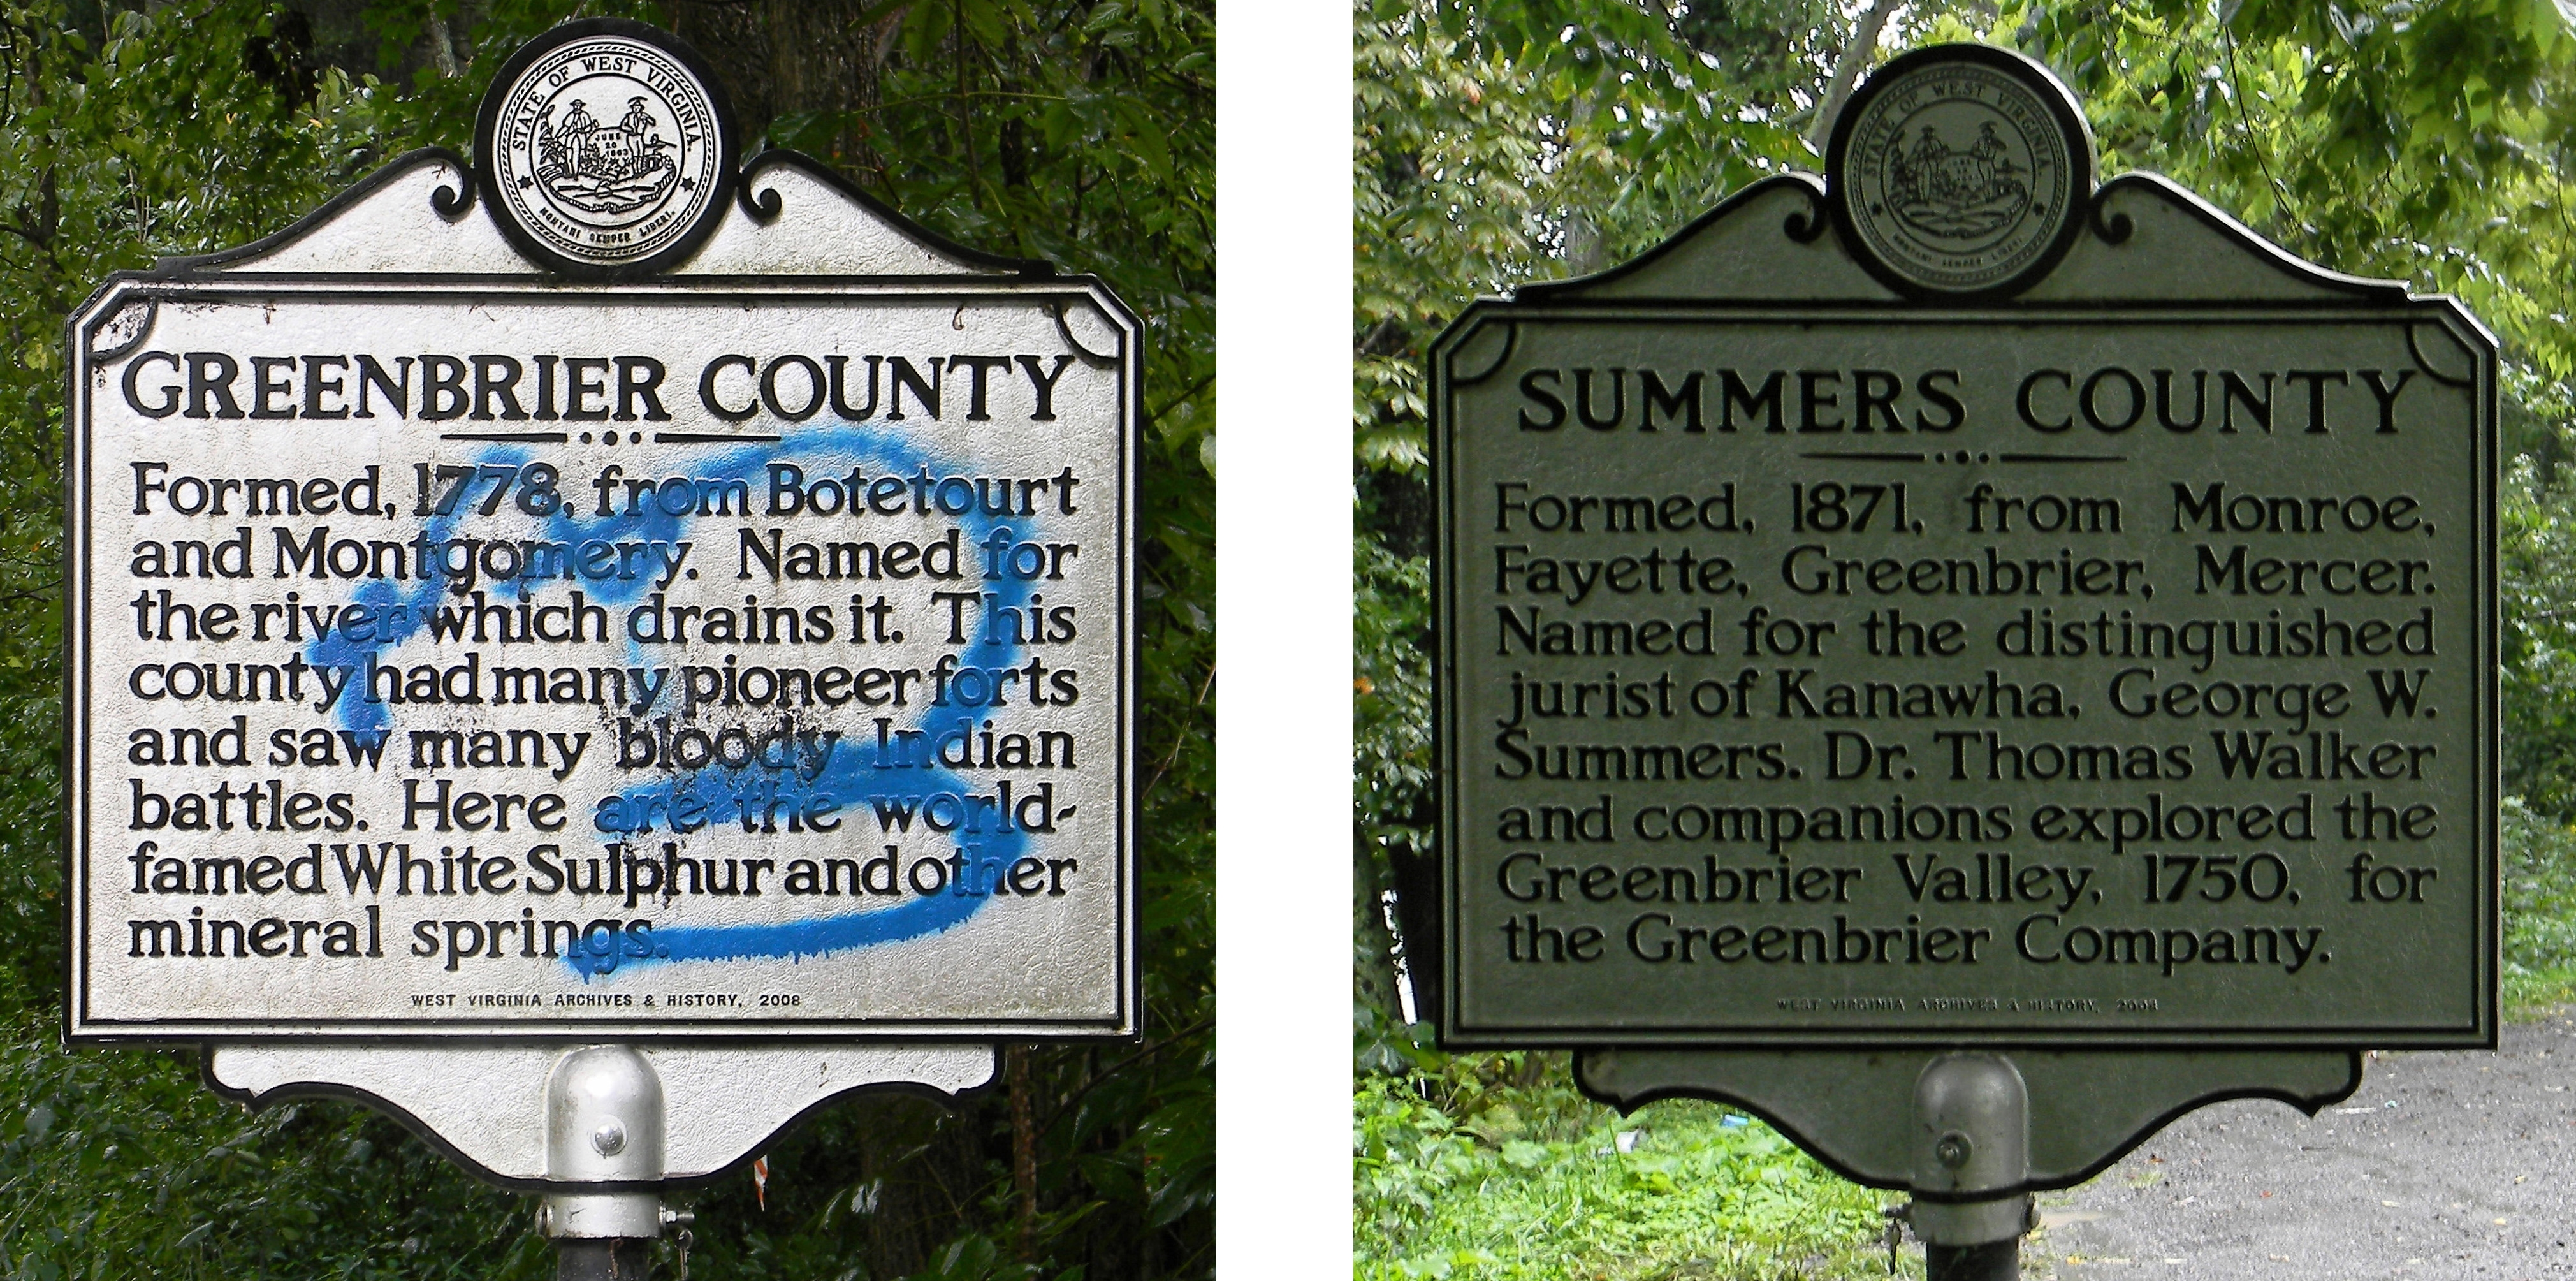 Greenbrier County / Summers County Marker